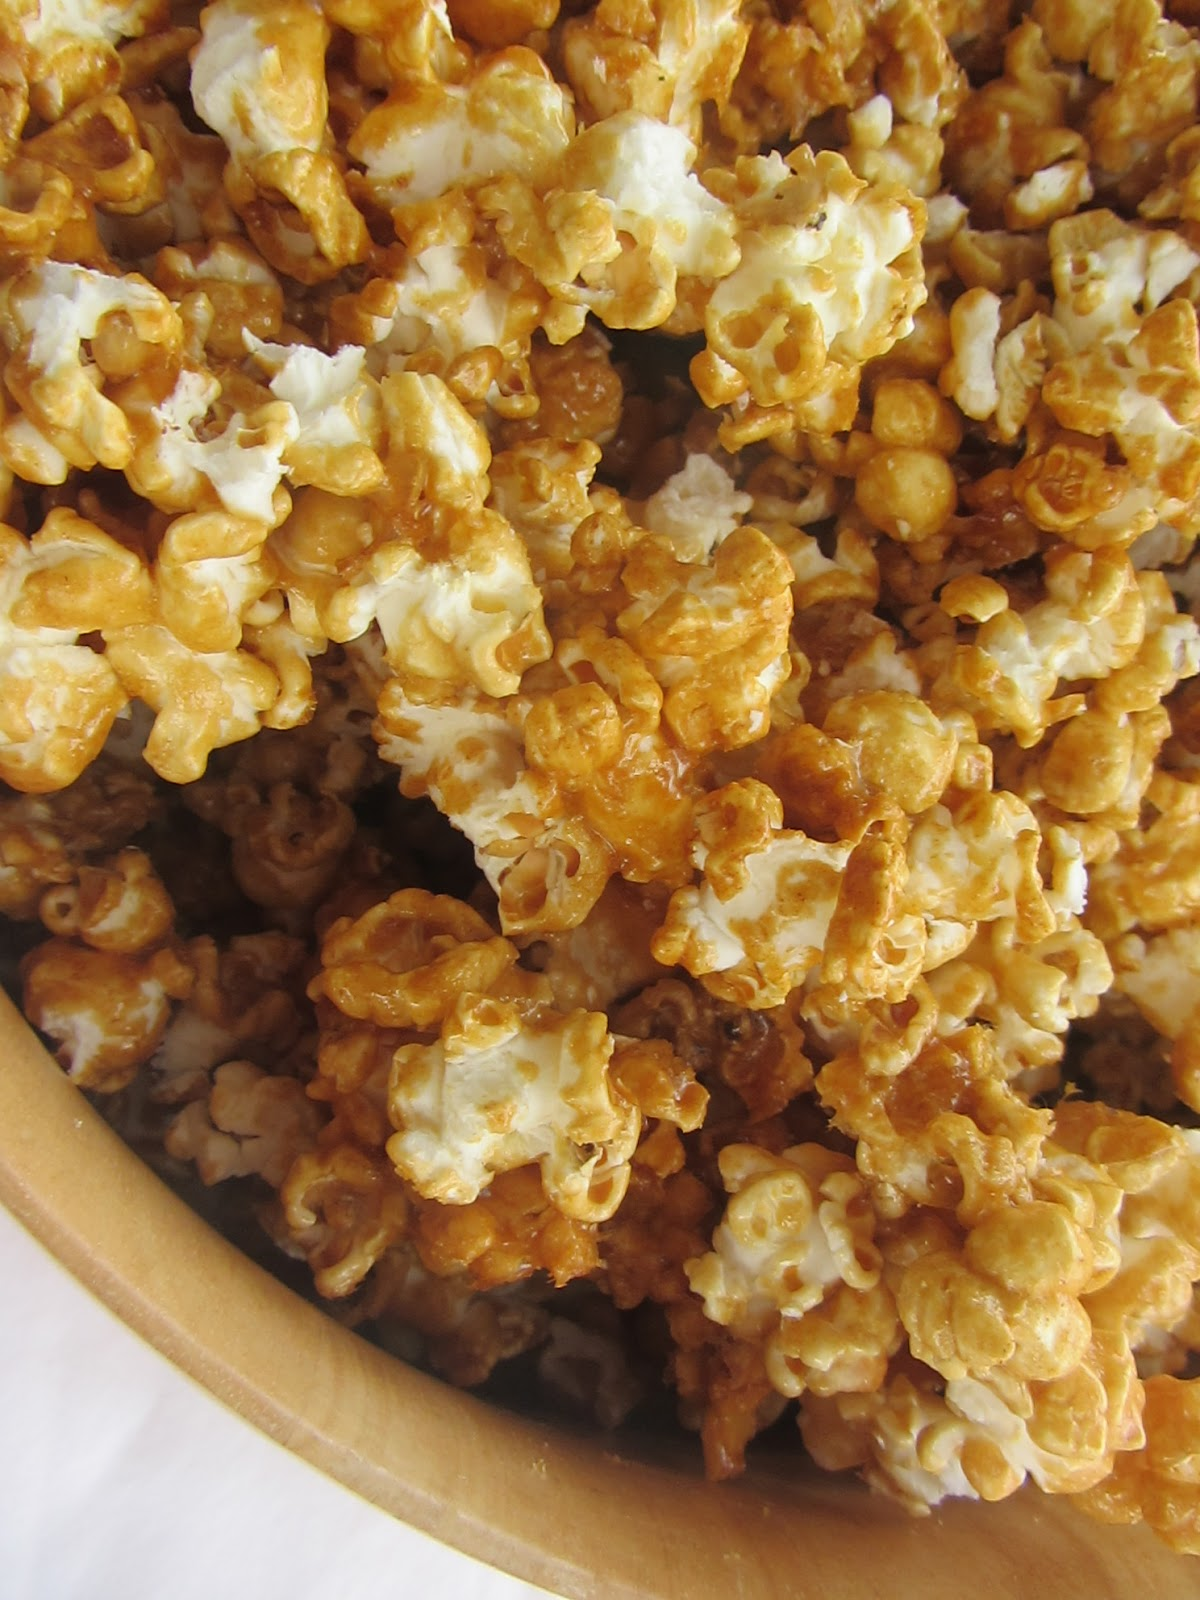 Making More with Less: Caramel Popcorn